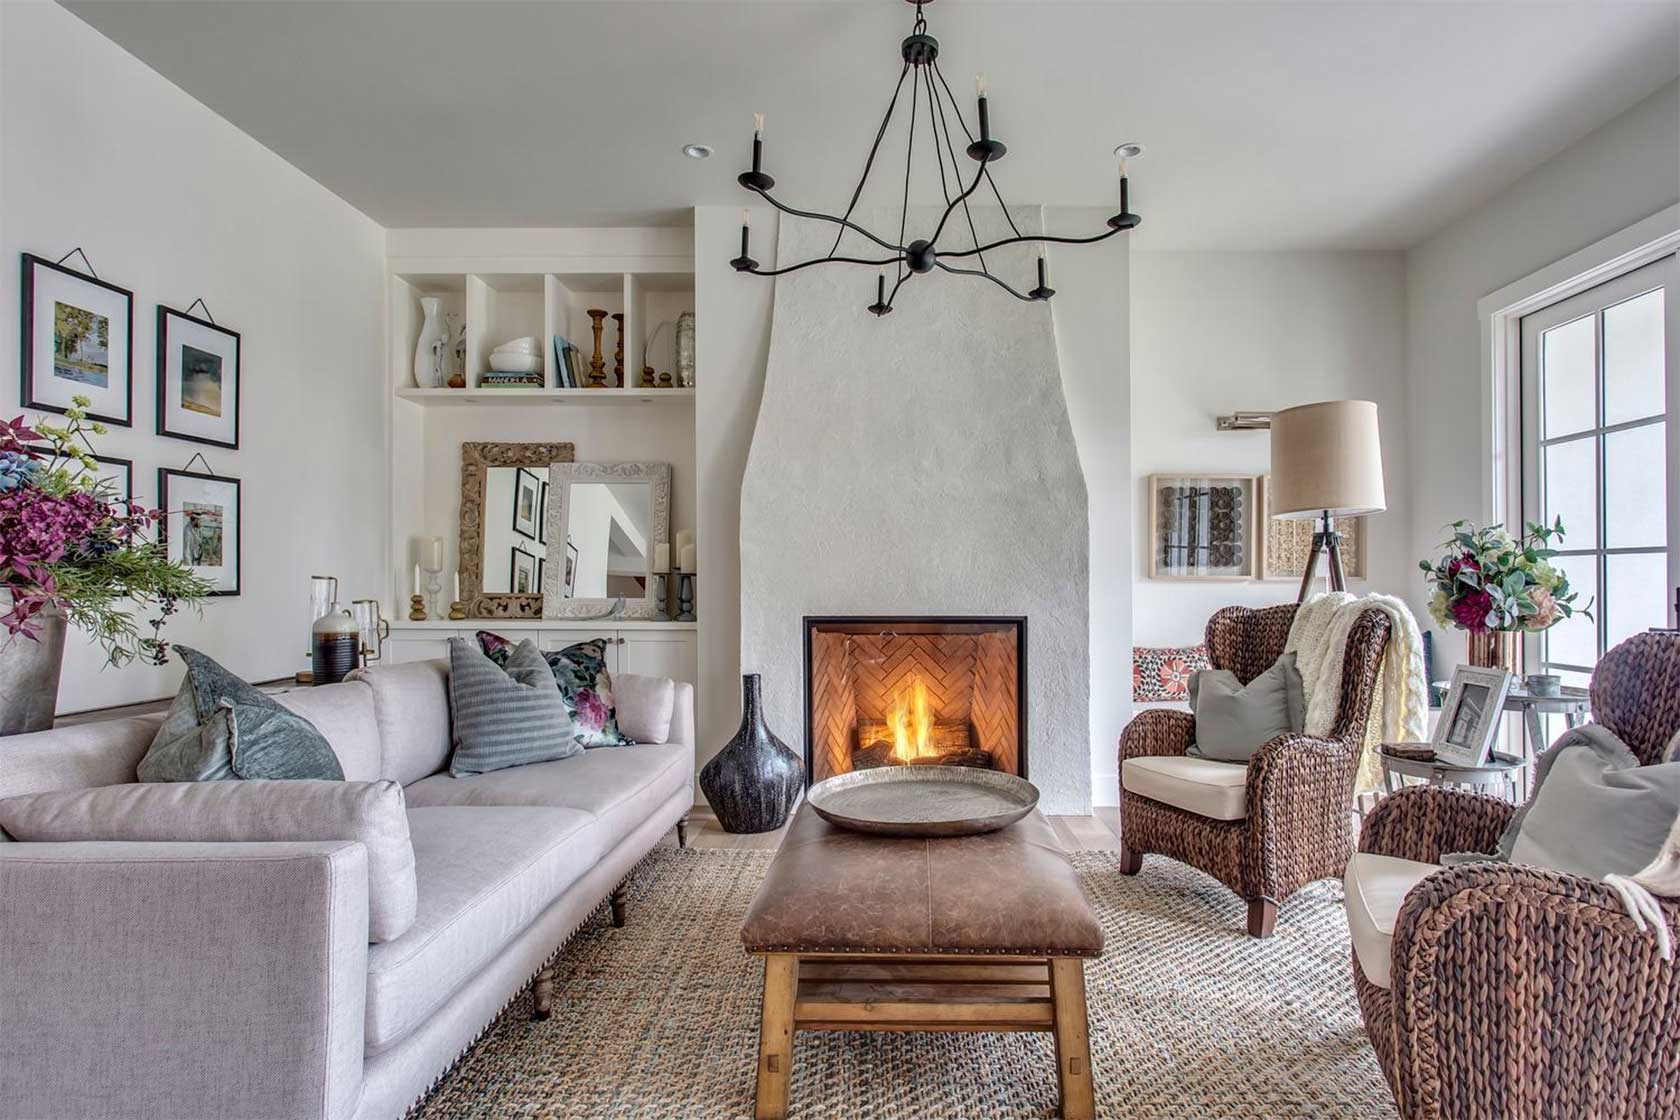 French Home Decor Using Area Rugs